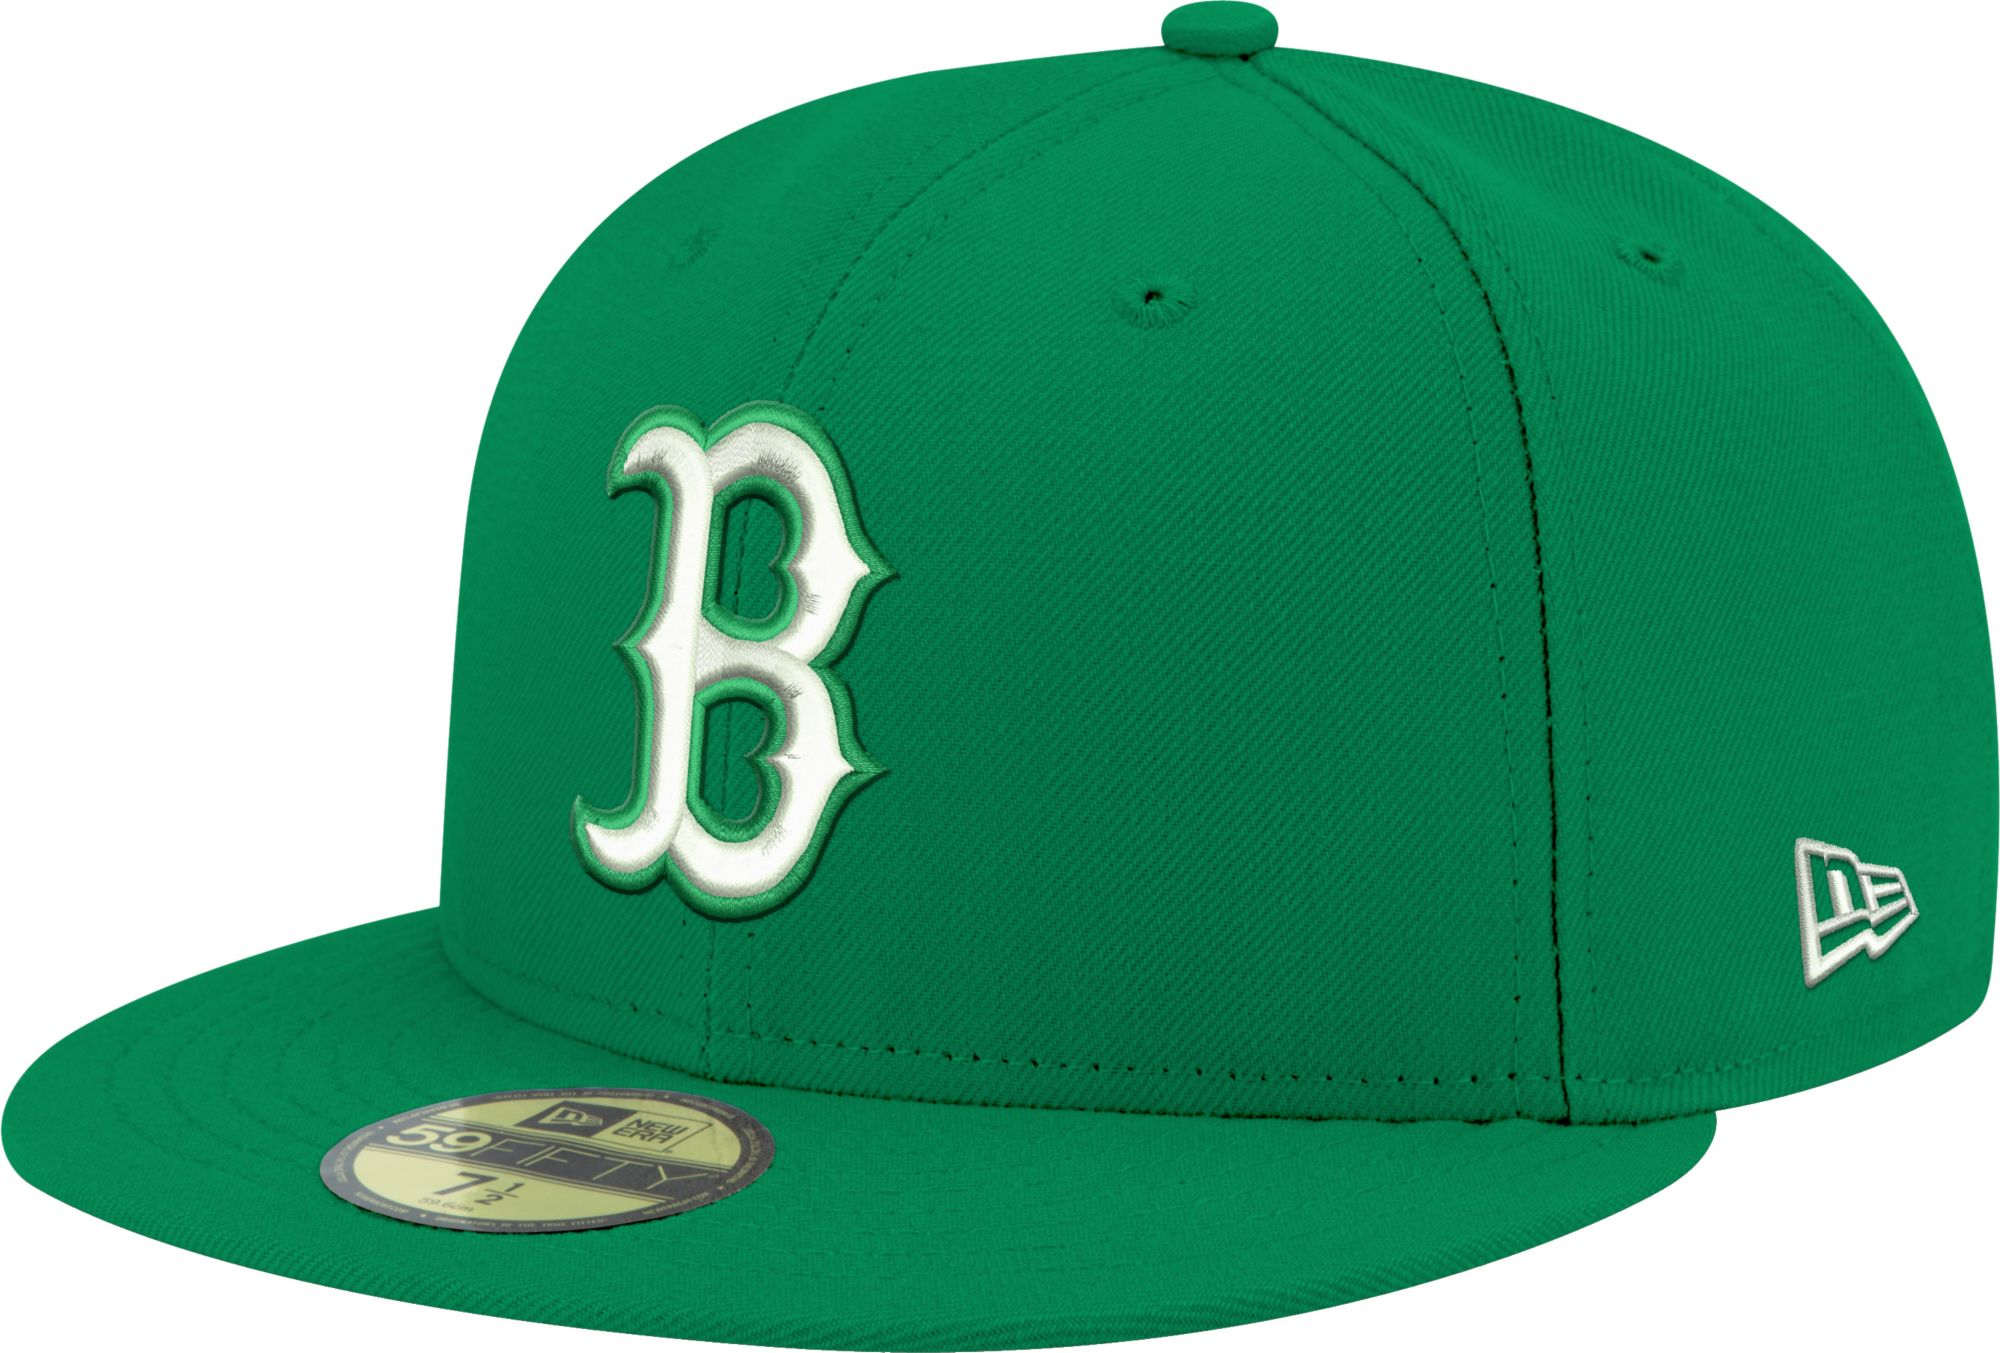 ... mlb memorial day 59fifty cap 1ac99 83738  italy new era mens boston red  sox 59fifty city pride kelly green fitted hat e6cb6 100a6 4946a9062a6f